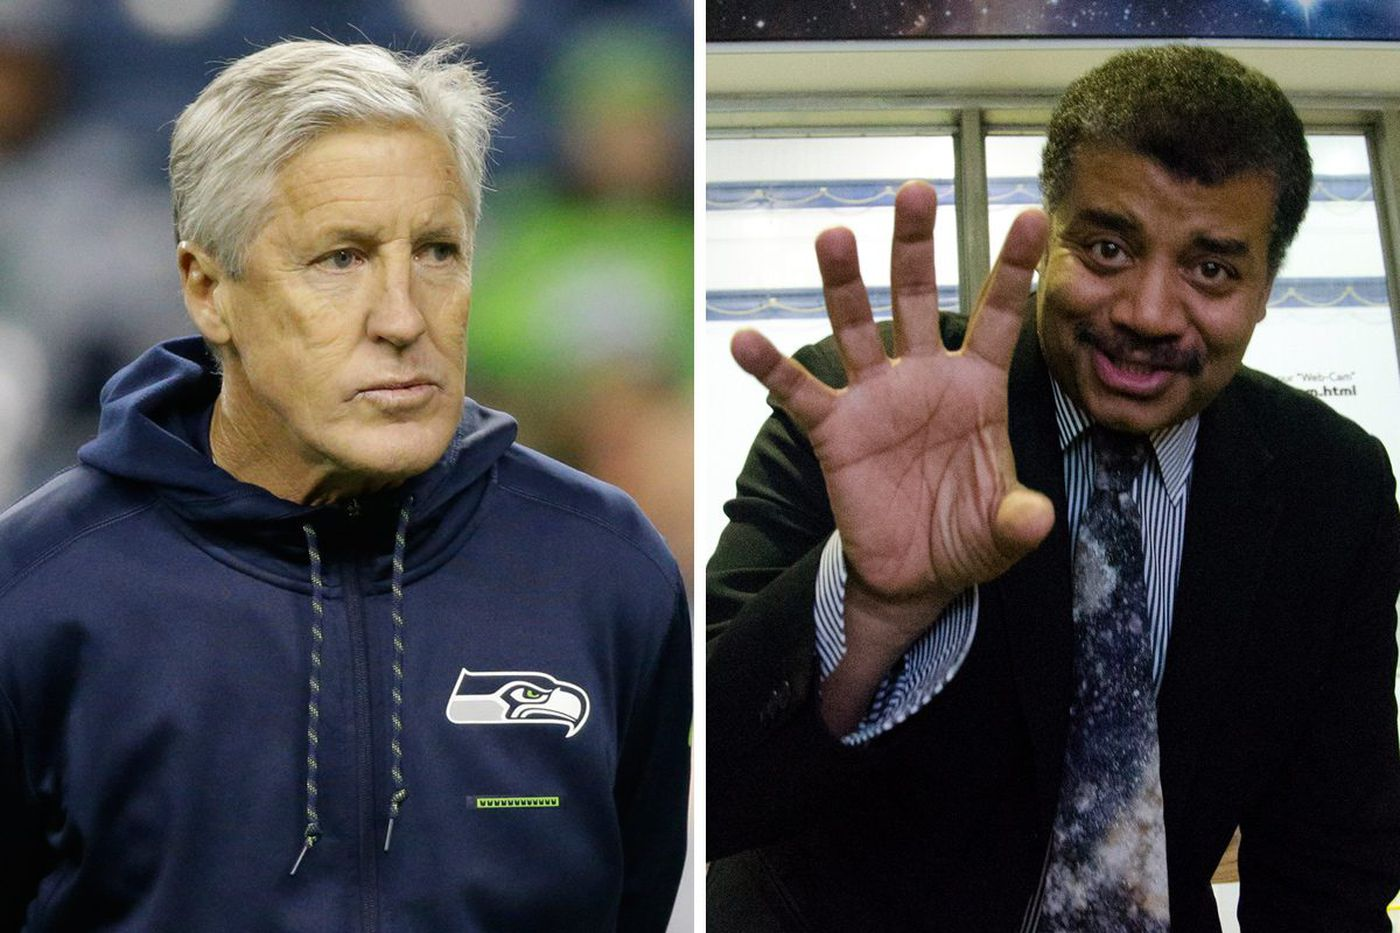 Pete Carroll thinks Neil deGrasse Tyson is on his side after Seahawks' controversial lateral. Not so fast